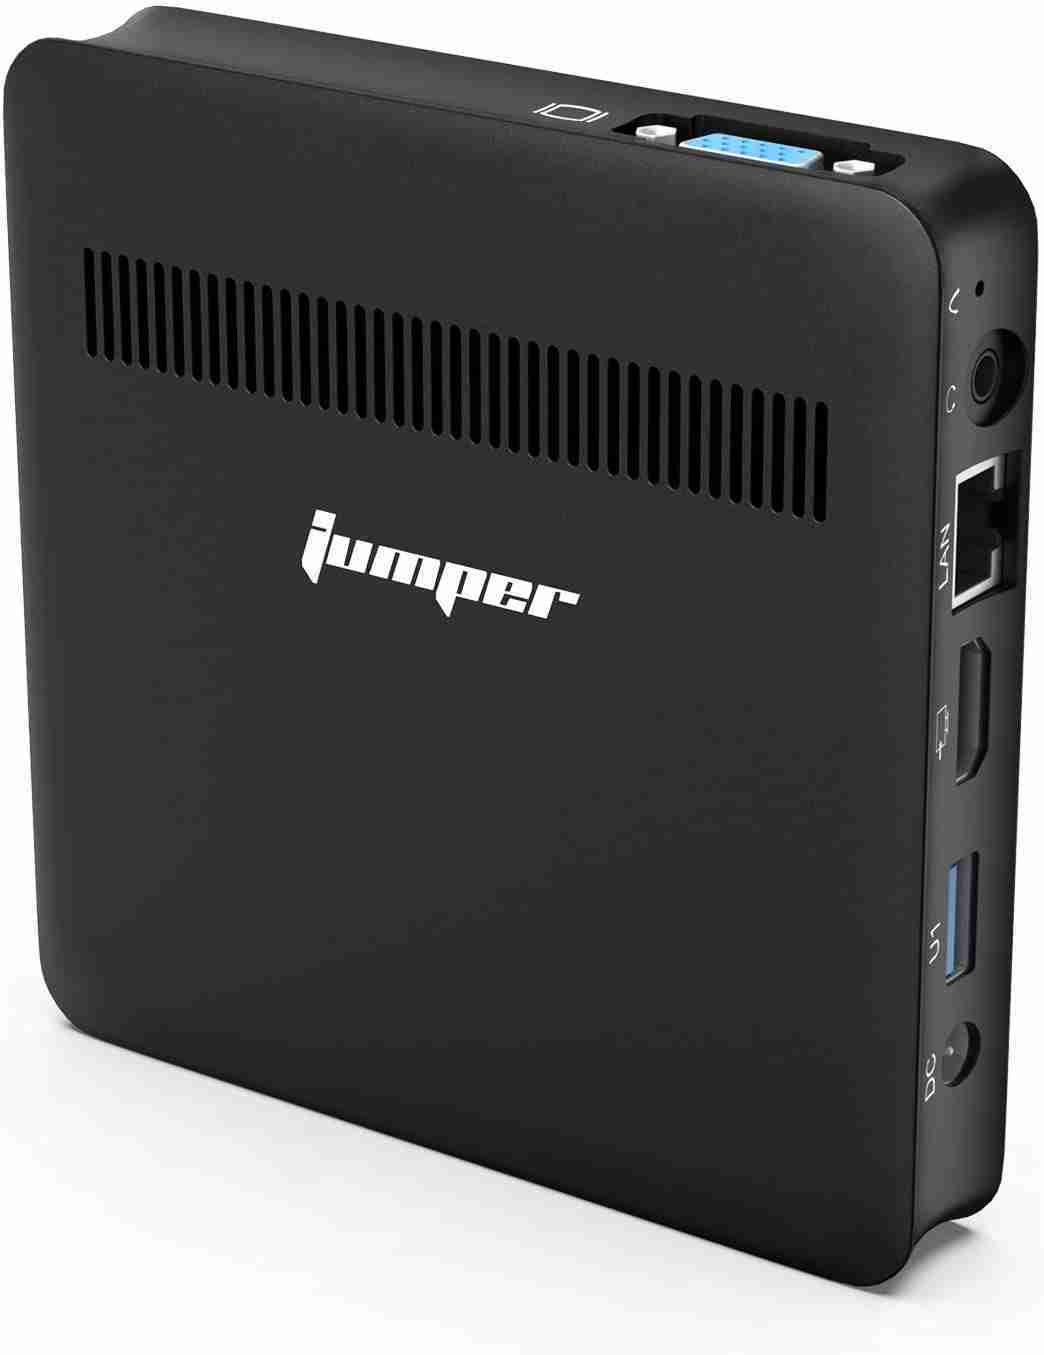 Jumper Mini PC